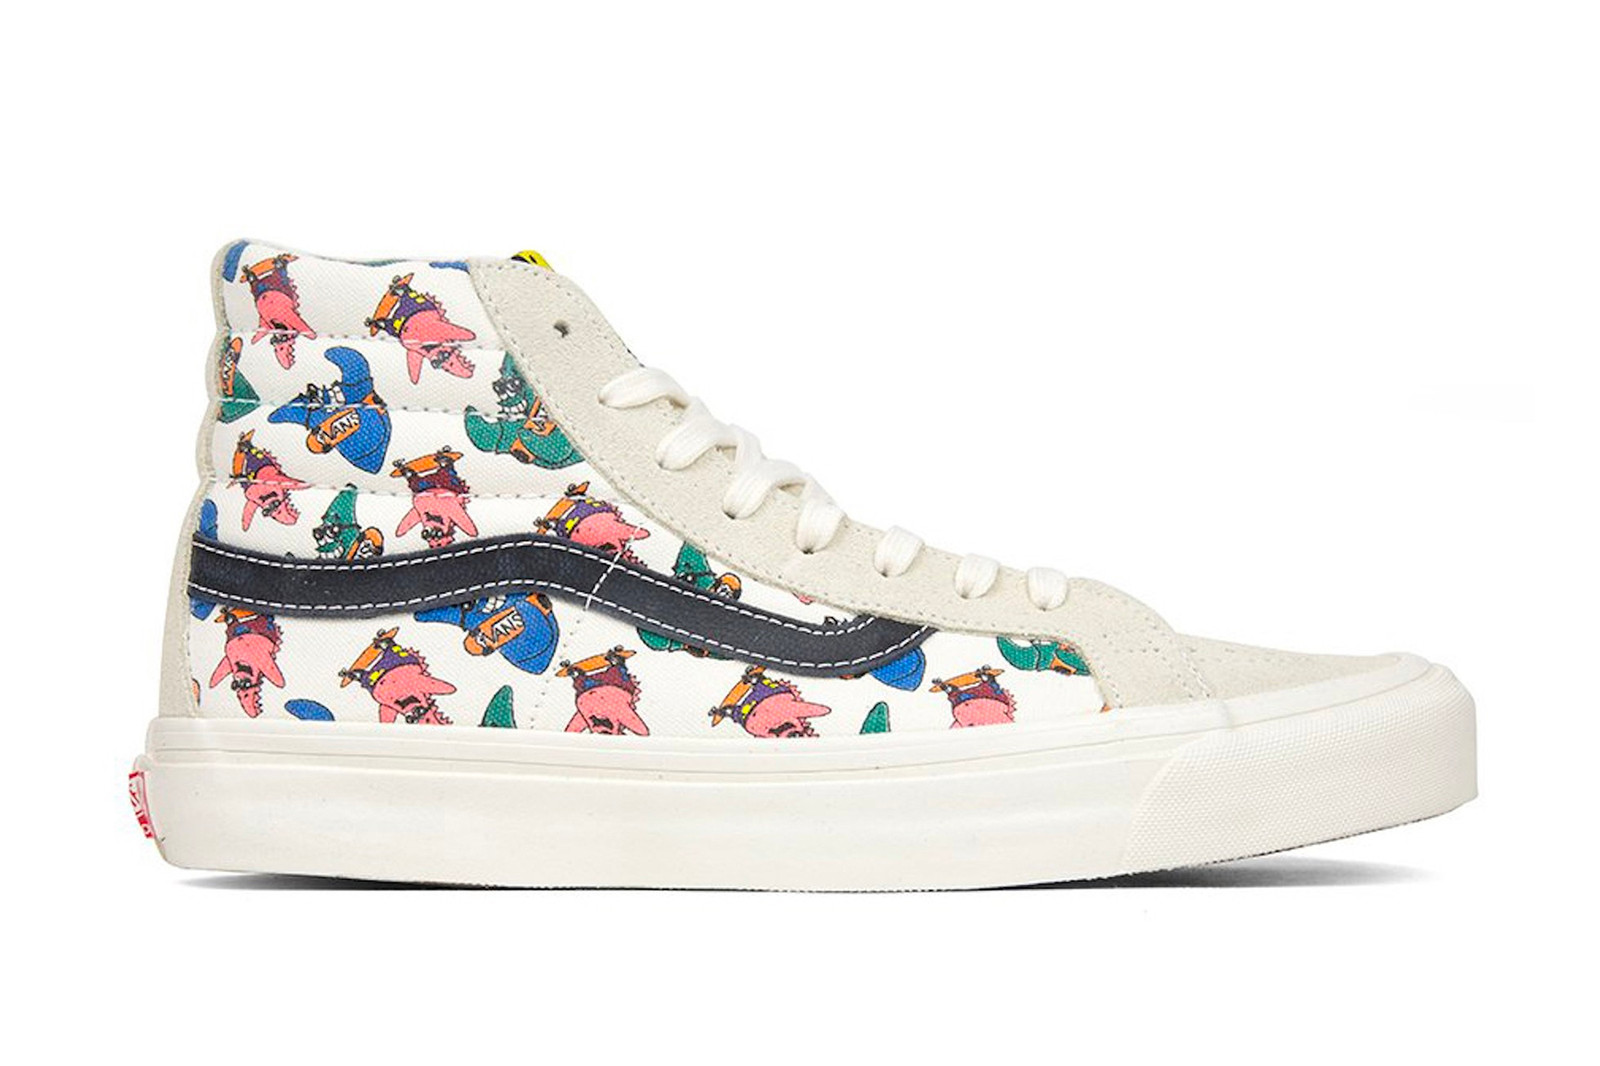 Spongebob Squarepants Vans Sneaker Collaboration Sk8-Hi Slip-On